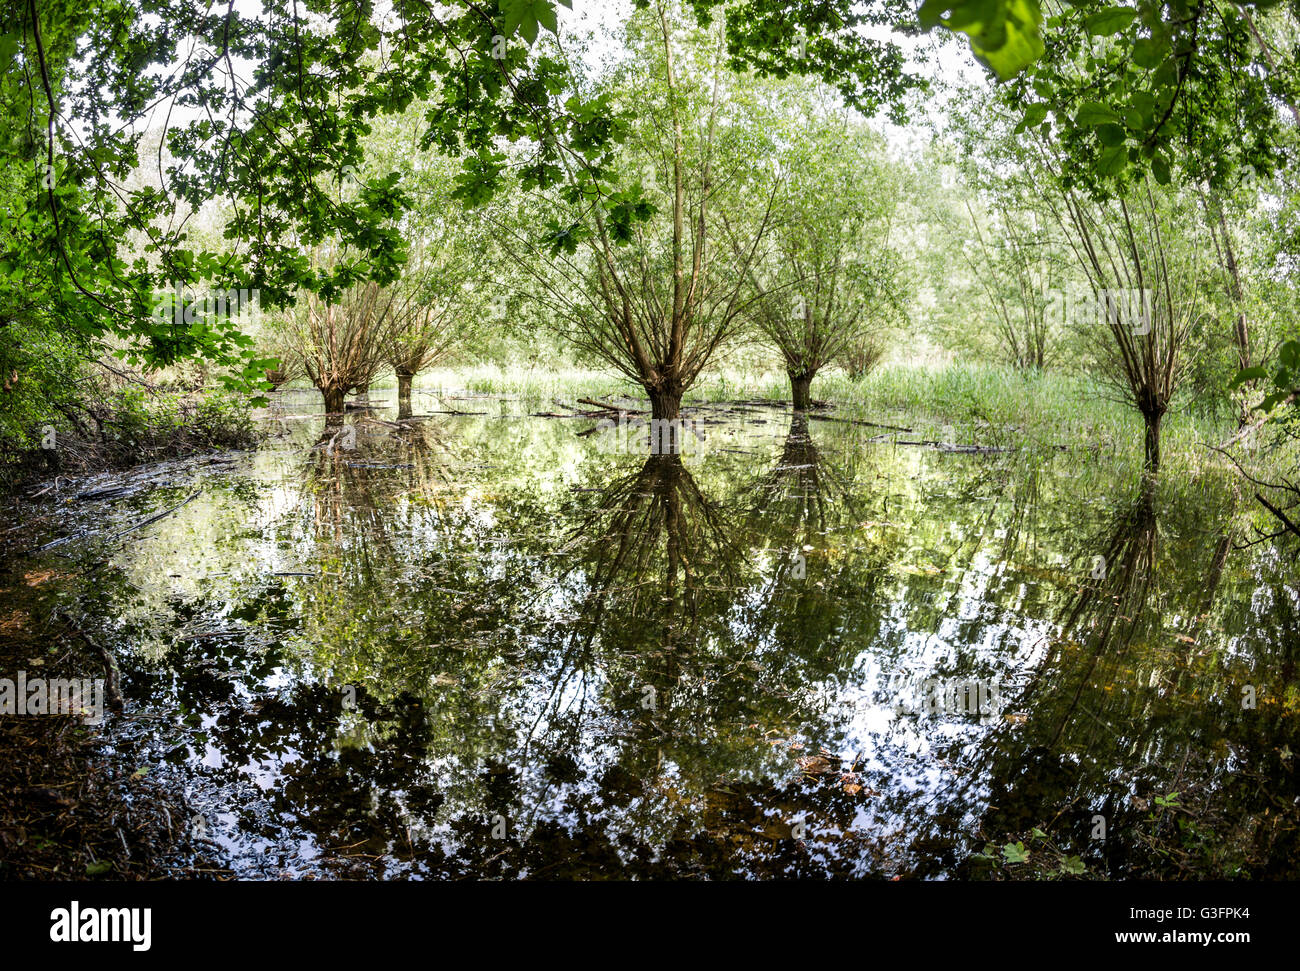 Stockstadt, Germany. 8th June, 2016. Willows reflecting in water in the nature reserve Kuehkopf near Stockstadt, Stock Photo